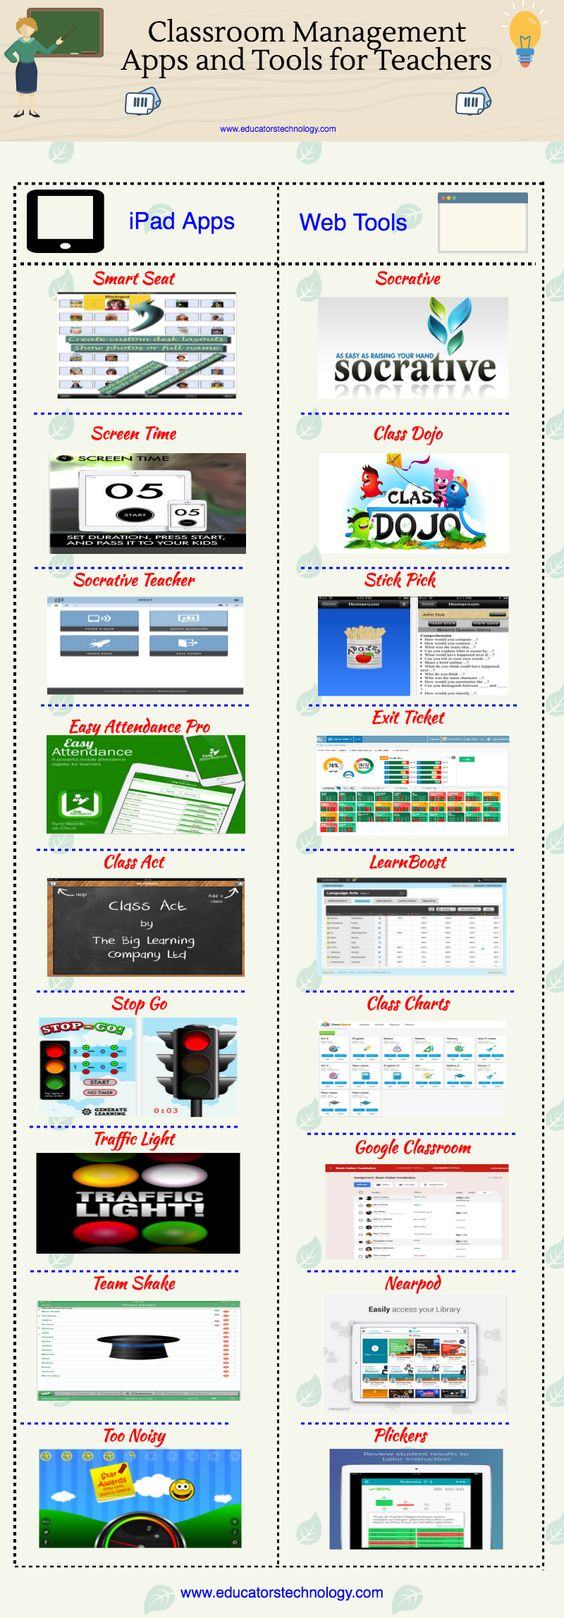 Innovative Classroom Management Tools ~ A good infographic featuring some of the best classroom